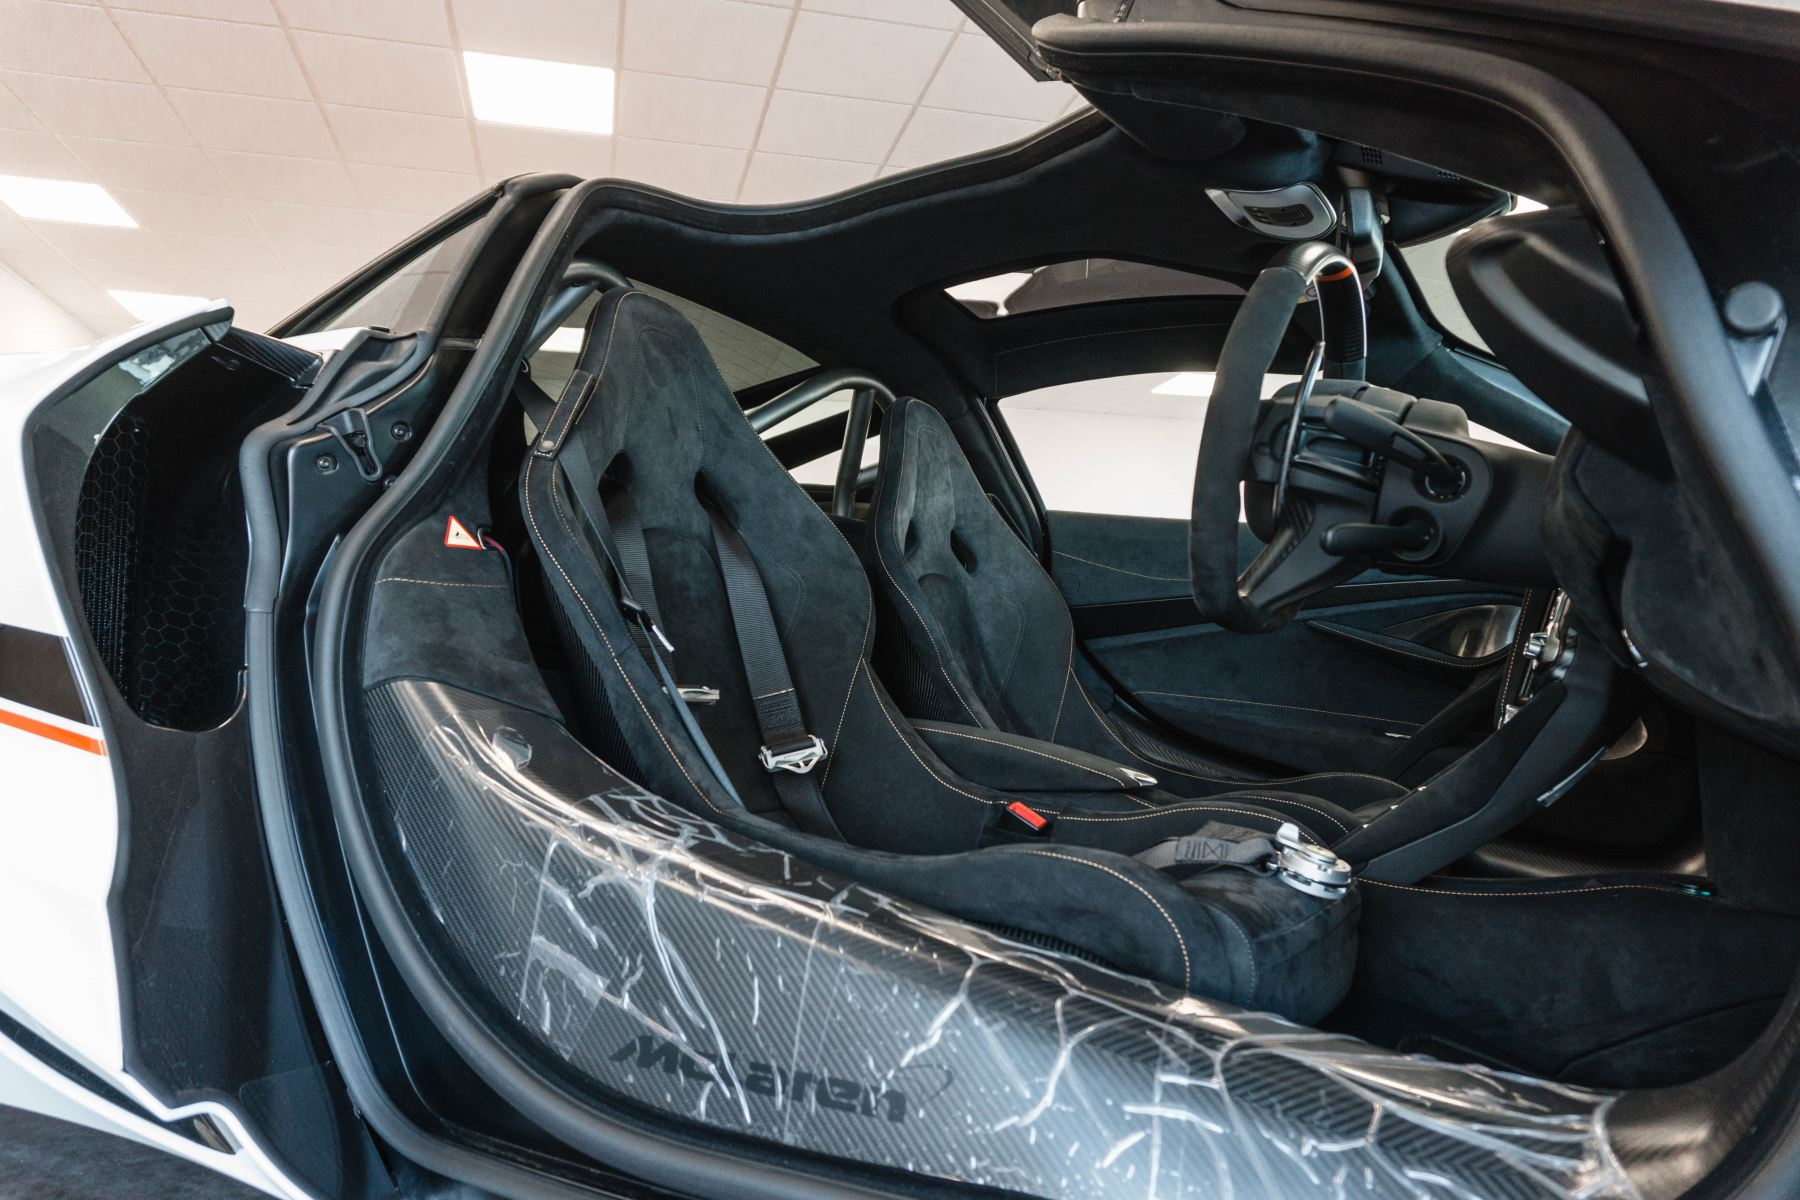 McLaren 720S V8 Performance SSG 4 0 Automatic 2 door Coupe 17MY at